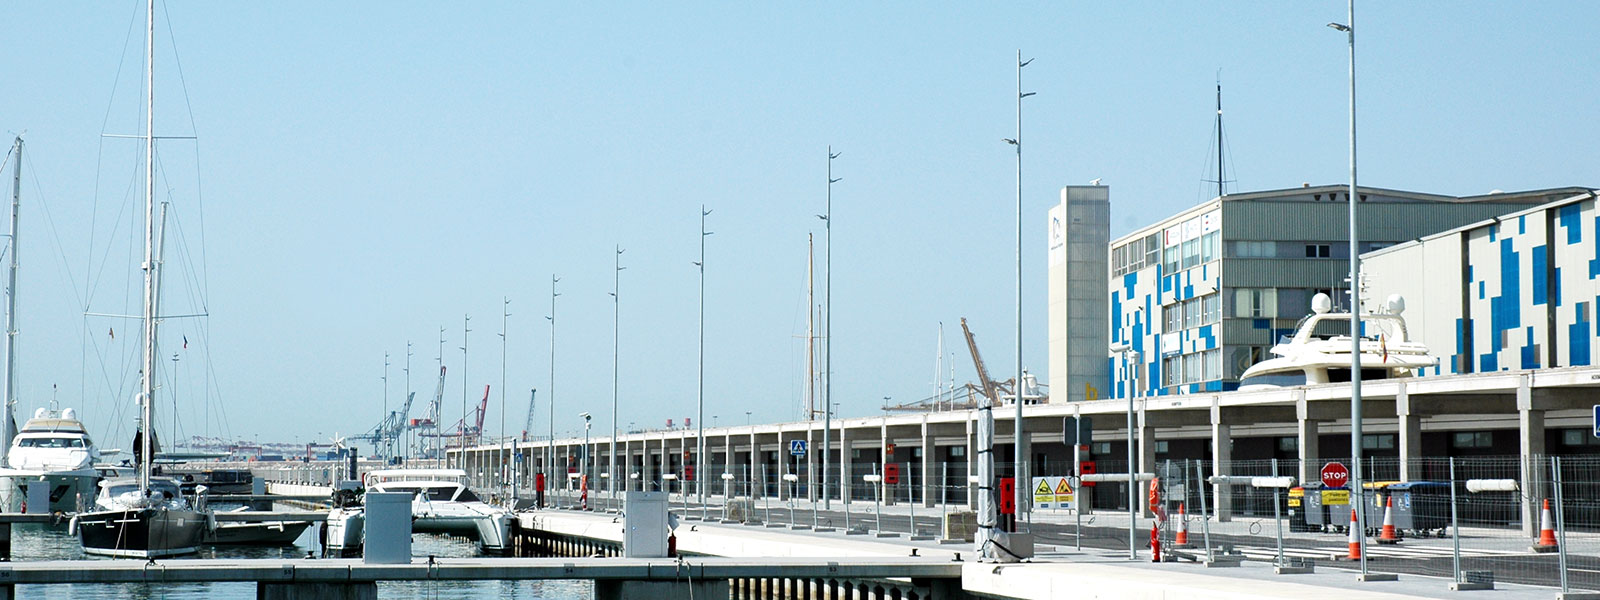 The Milan projector on the new rambla of the port of Barcelona